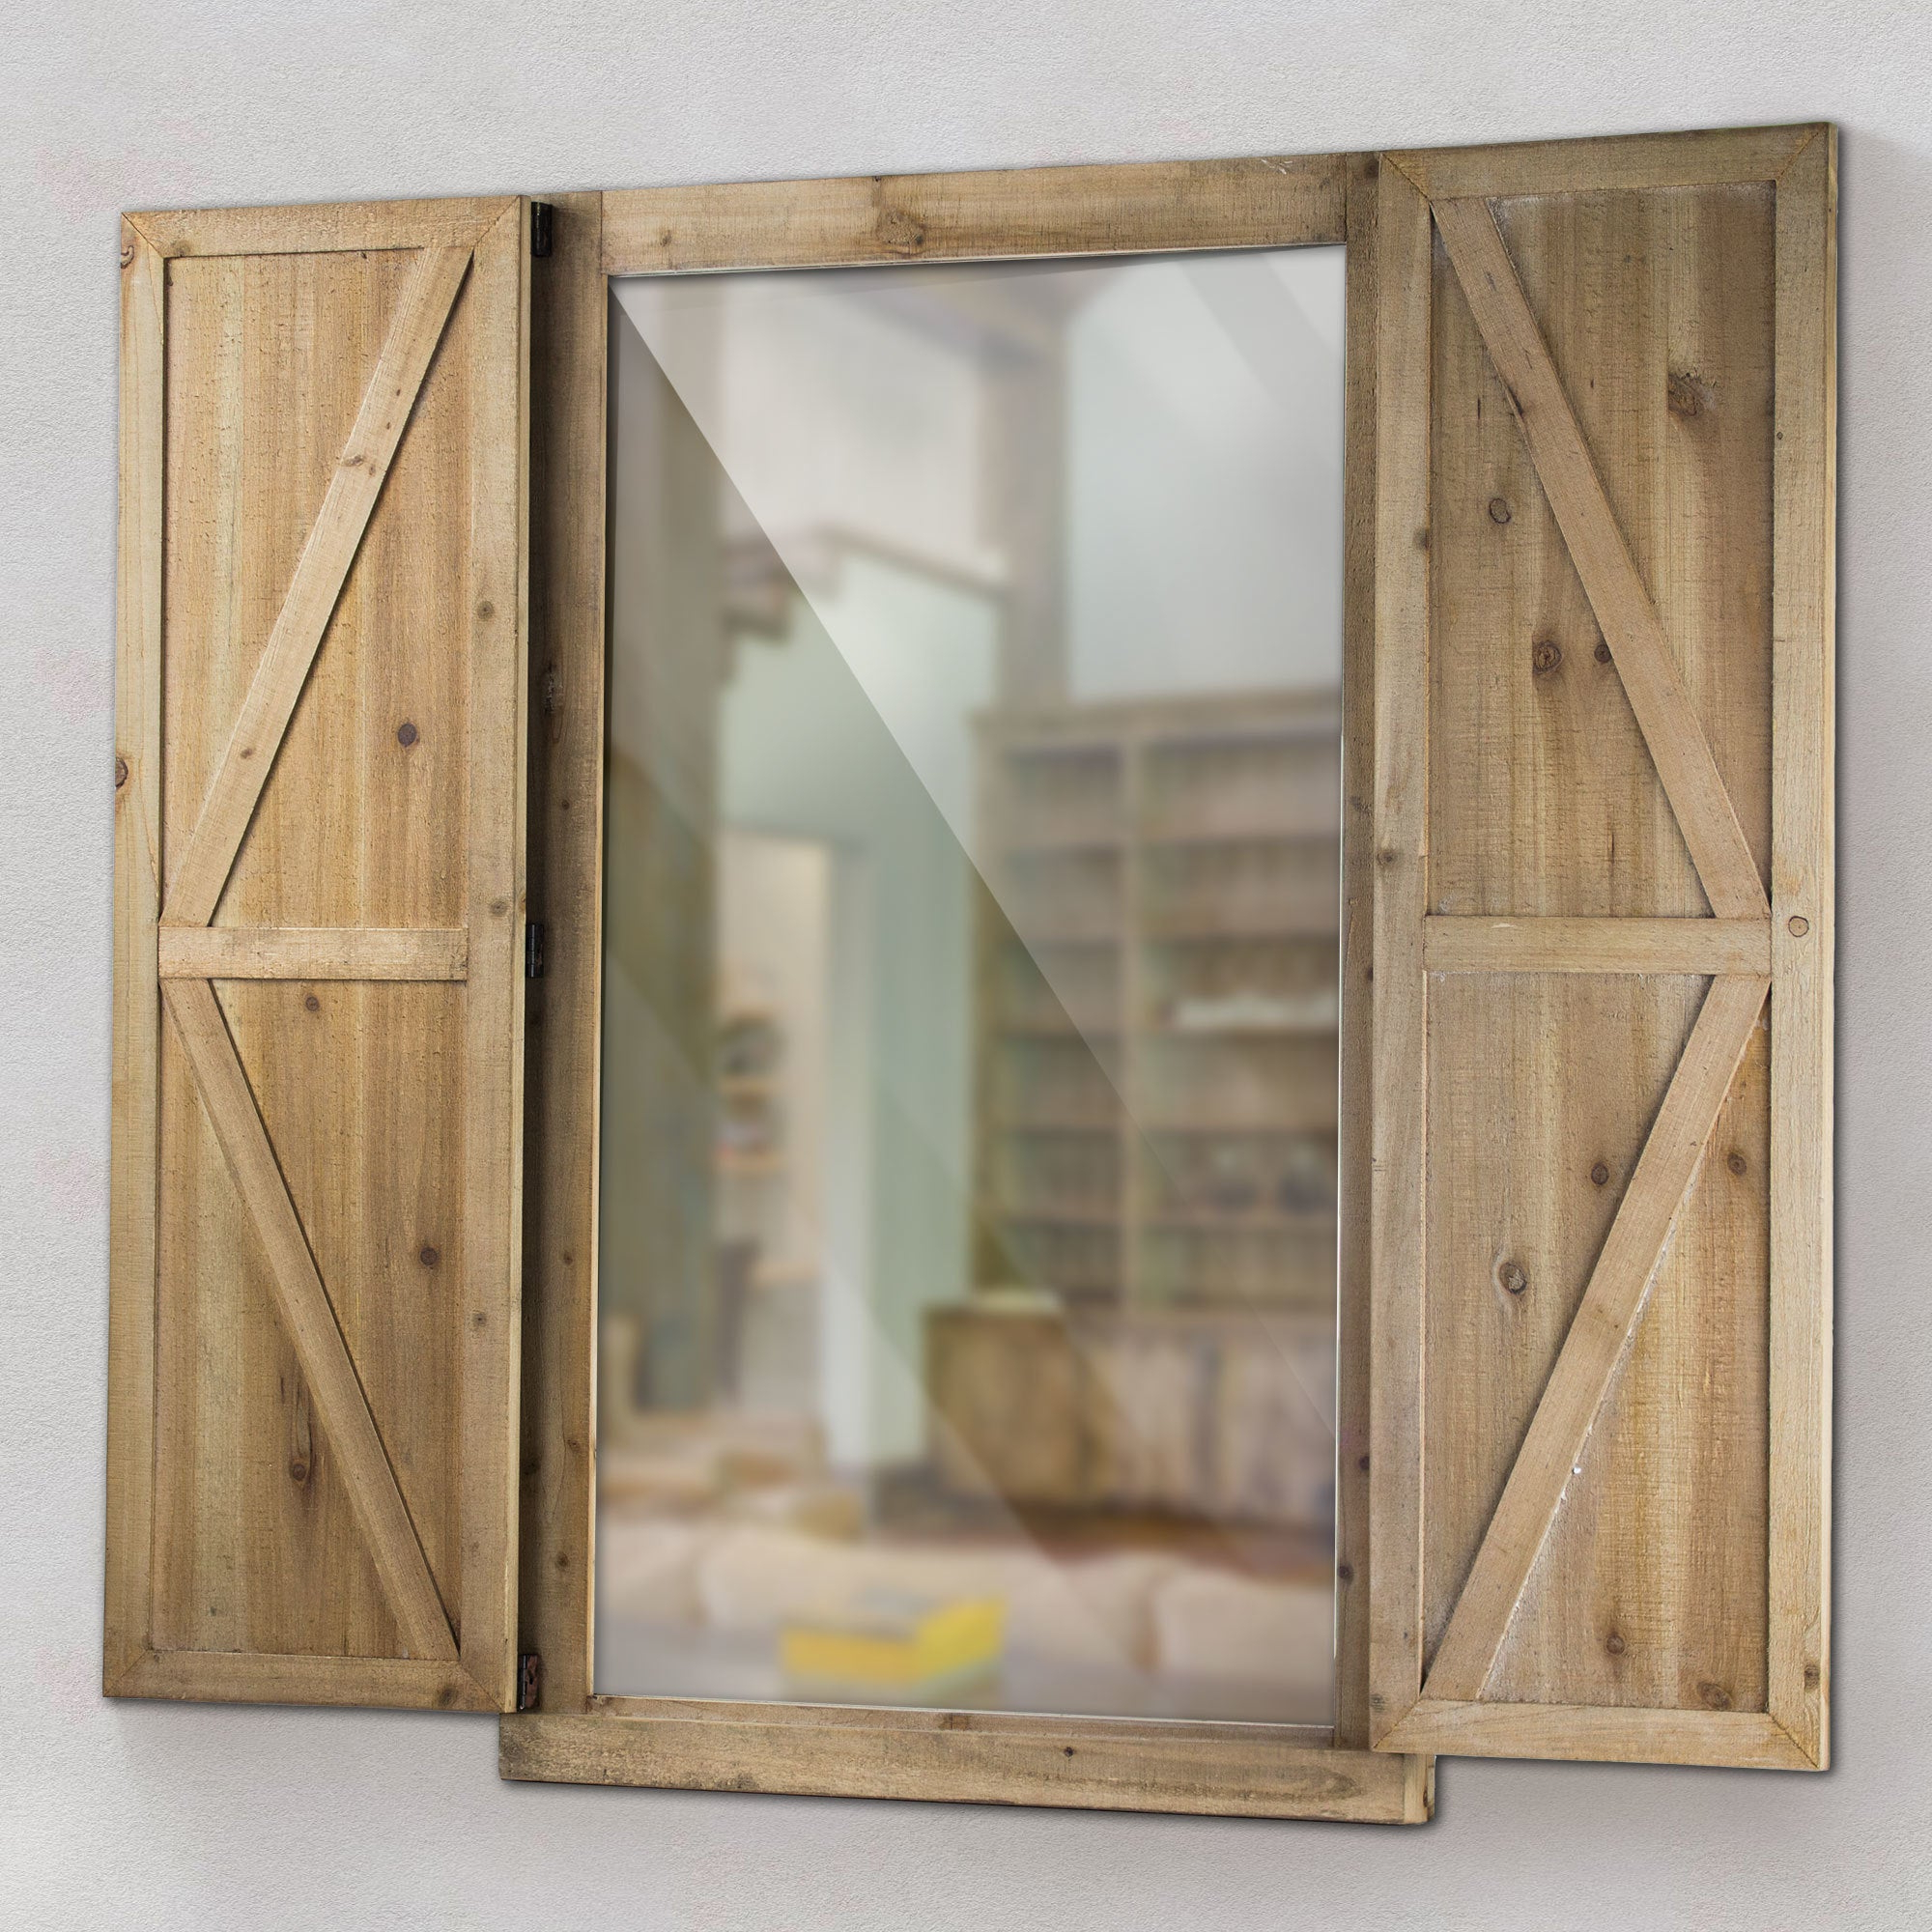 Trendy Rustic Wall Mirrors Intended For Shuttered Wall Mirror With Rustic Wooden Frame Farmhouse Decor (View 16 of 20)